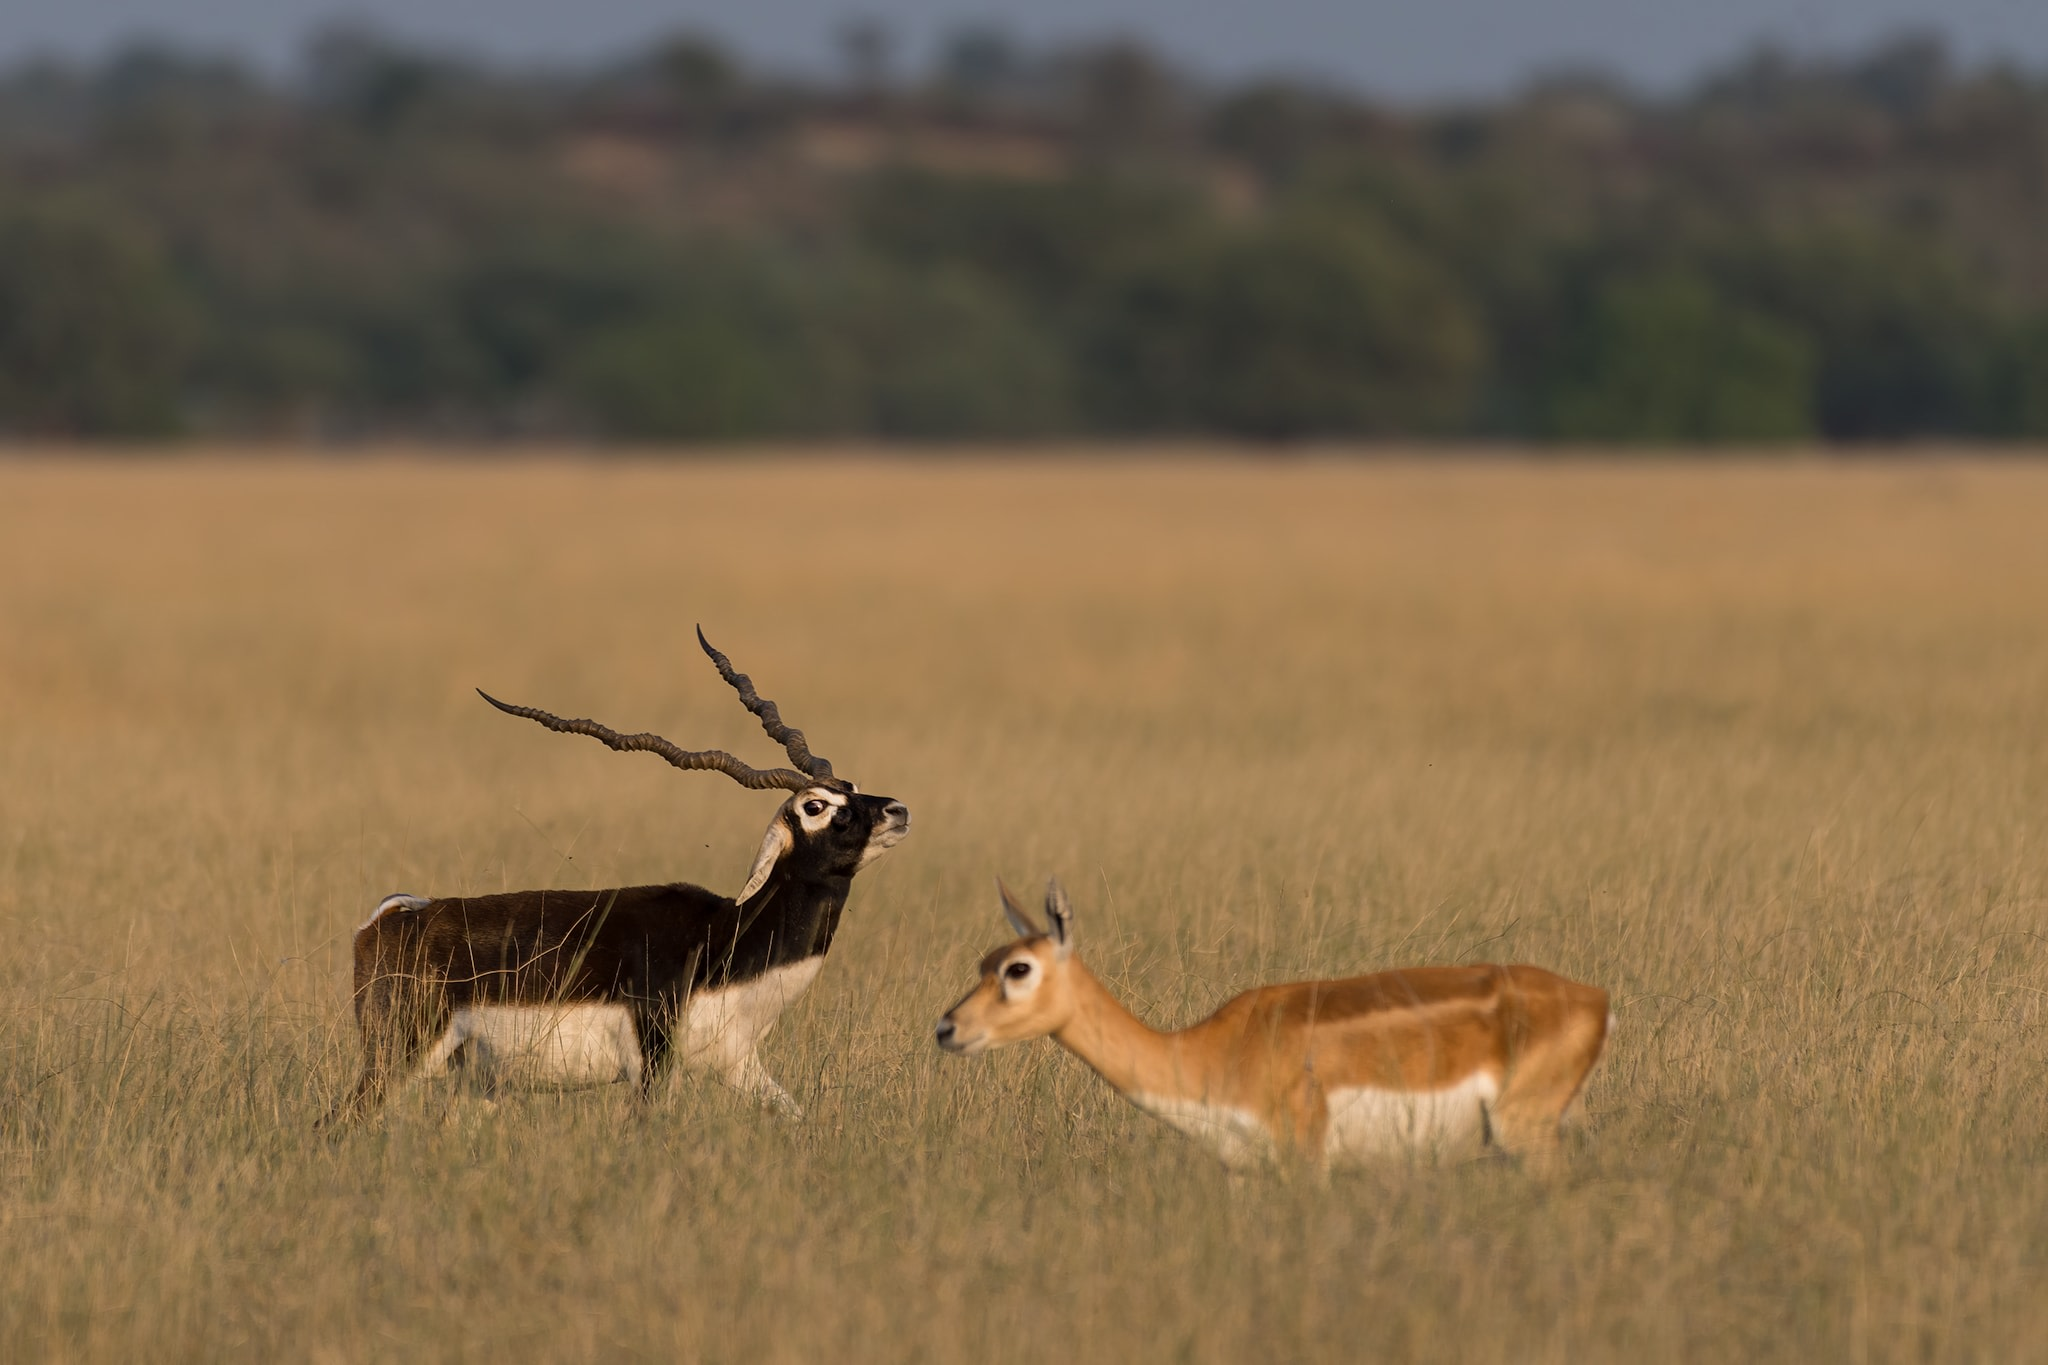 Blackbucks establish territories with plentiful grass and water right in the paths of hungry does, since the way to females' hearts is through their stomachs.